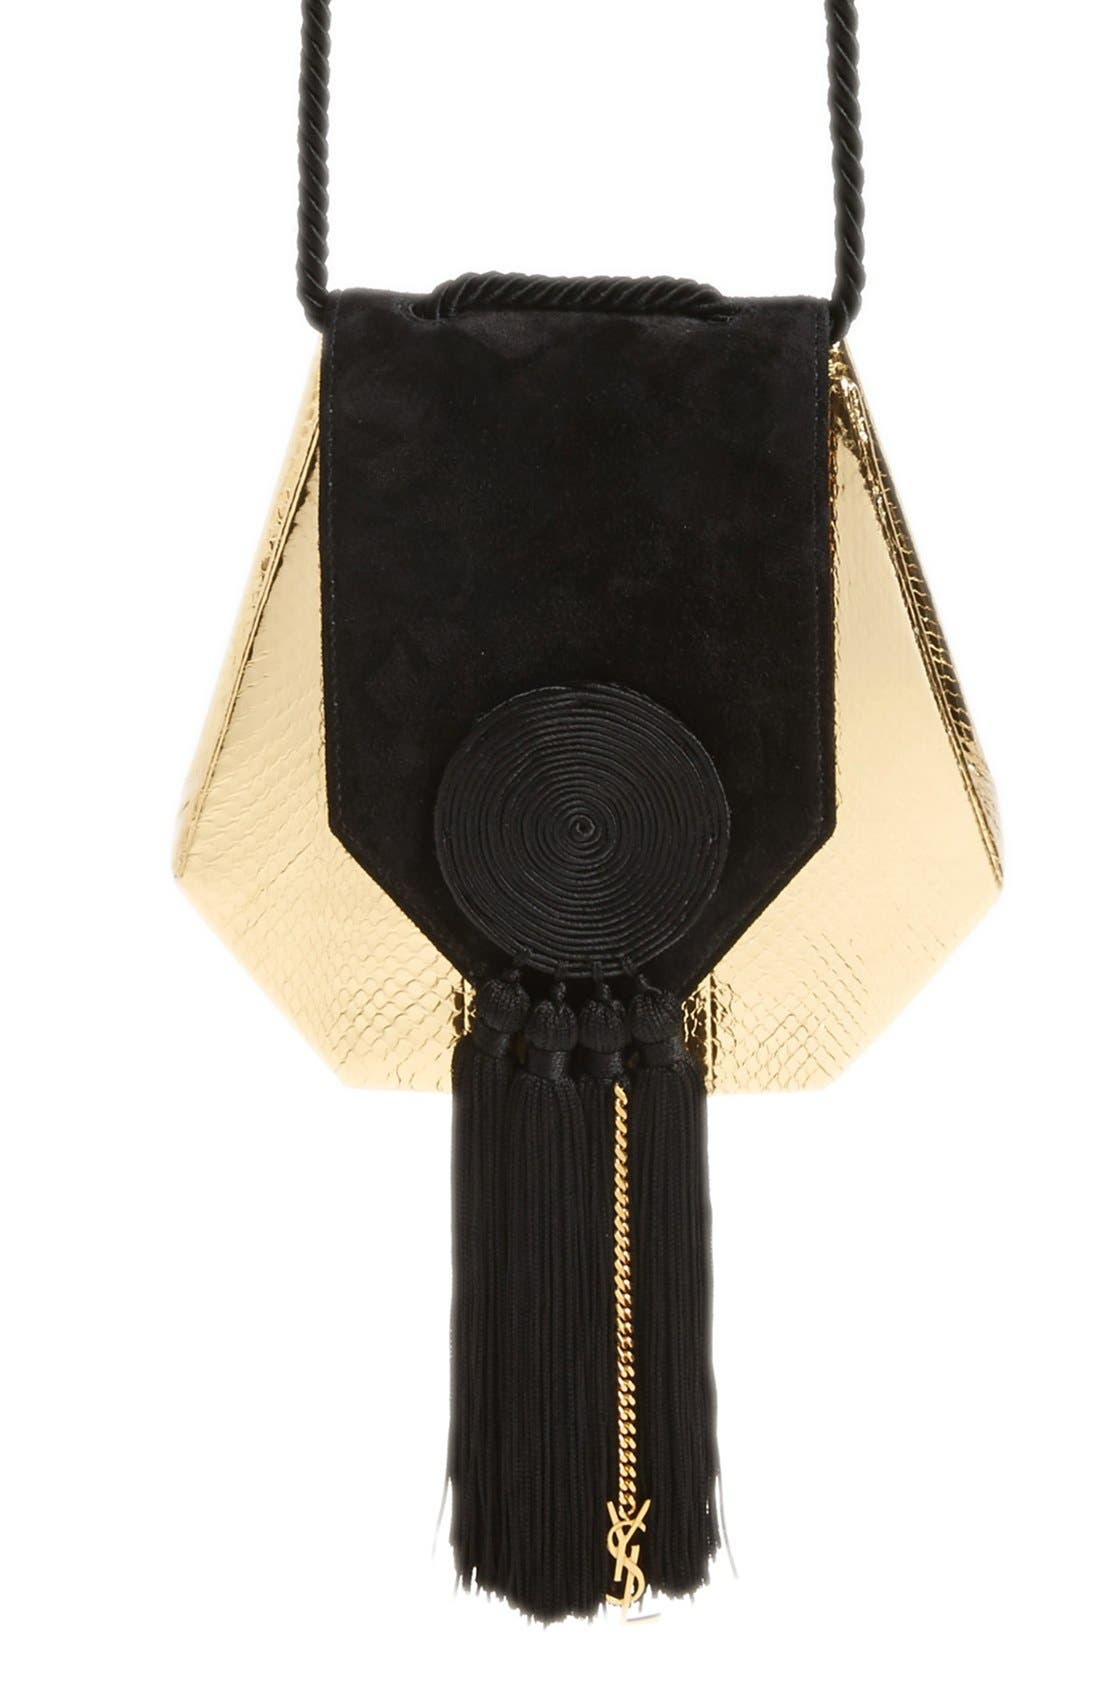 Saint Laurent 'Opium' Genuine Snakeskin & Leather Saddle Bag